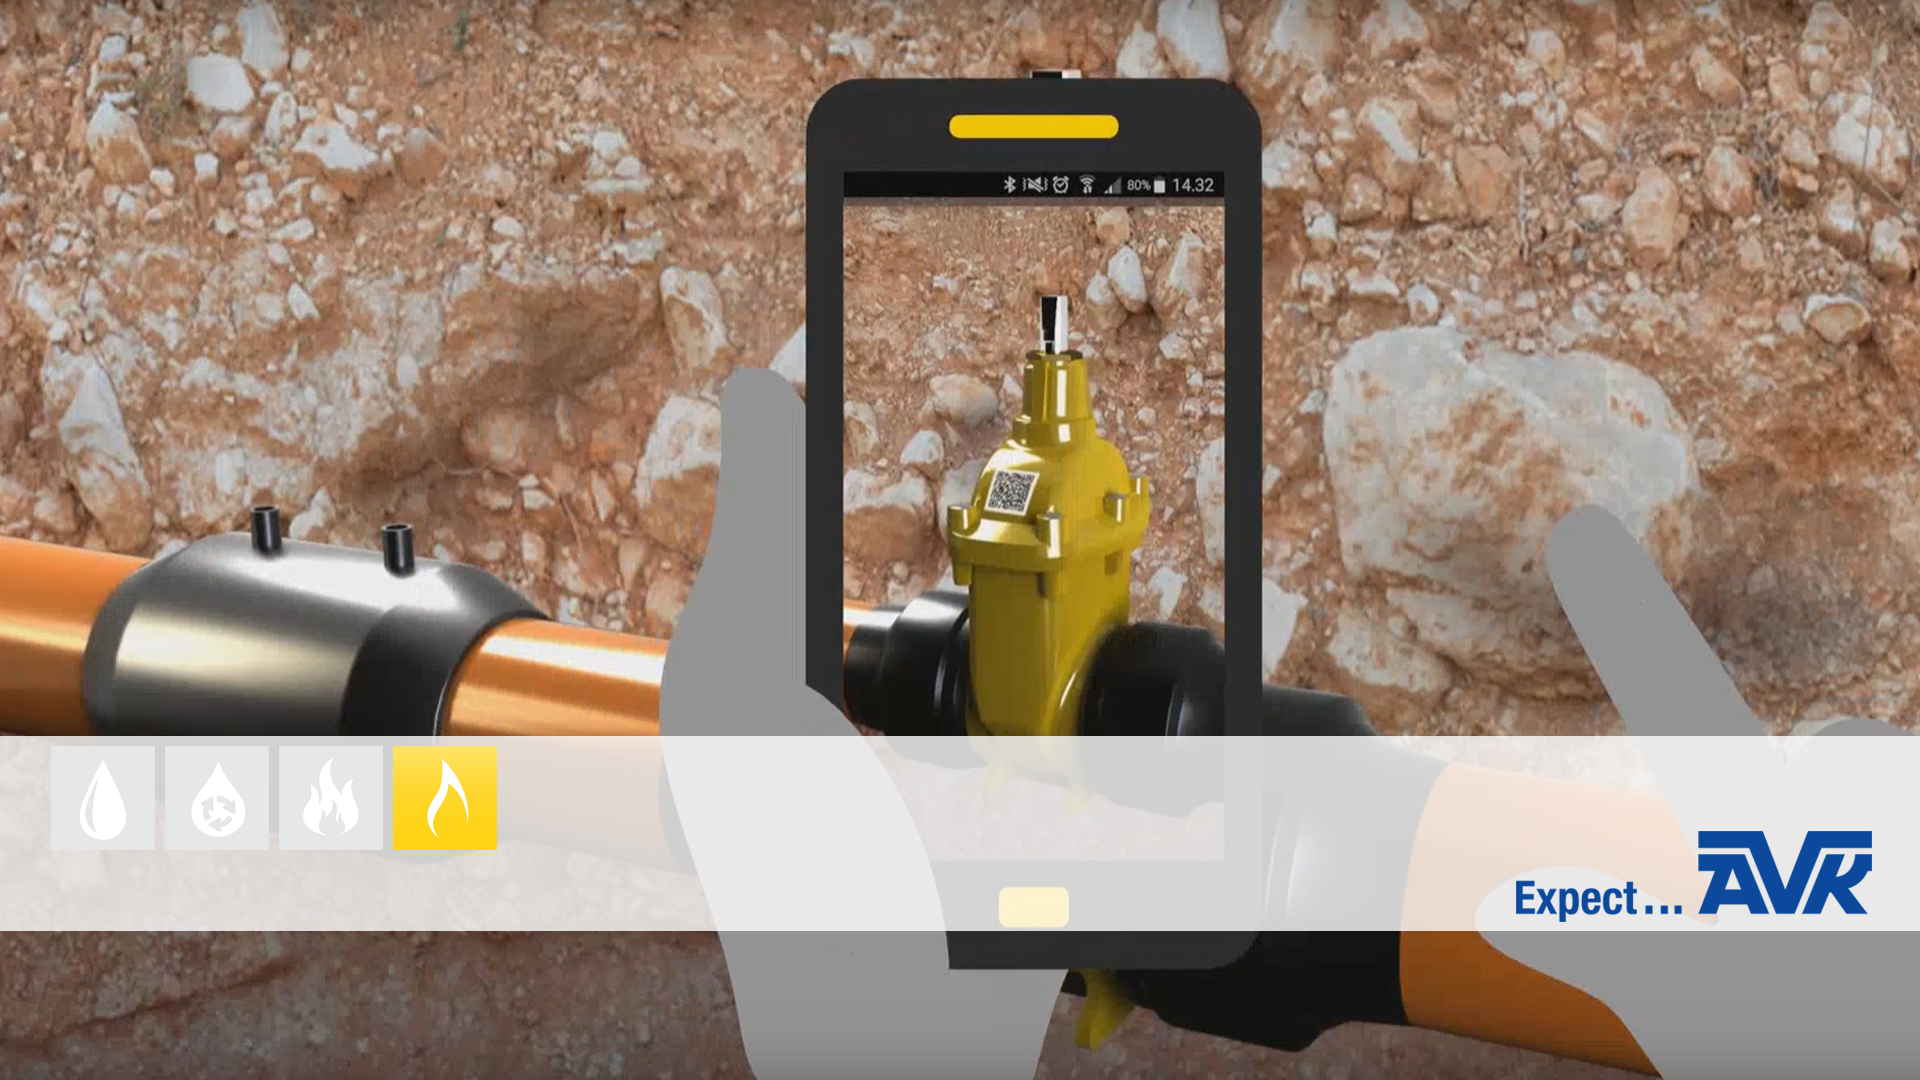 Video tutorial explaining  the App that gives full traceability of gas gate valves